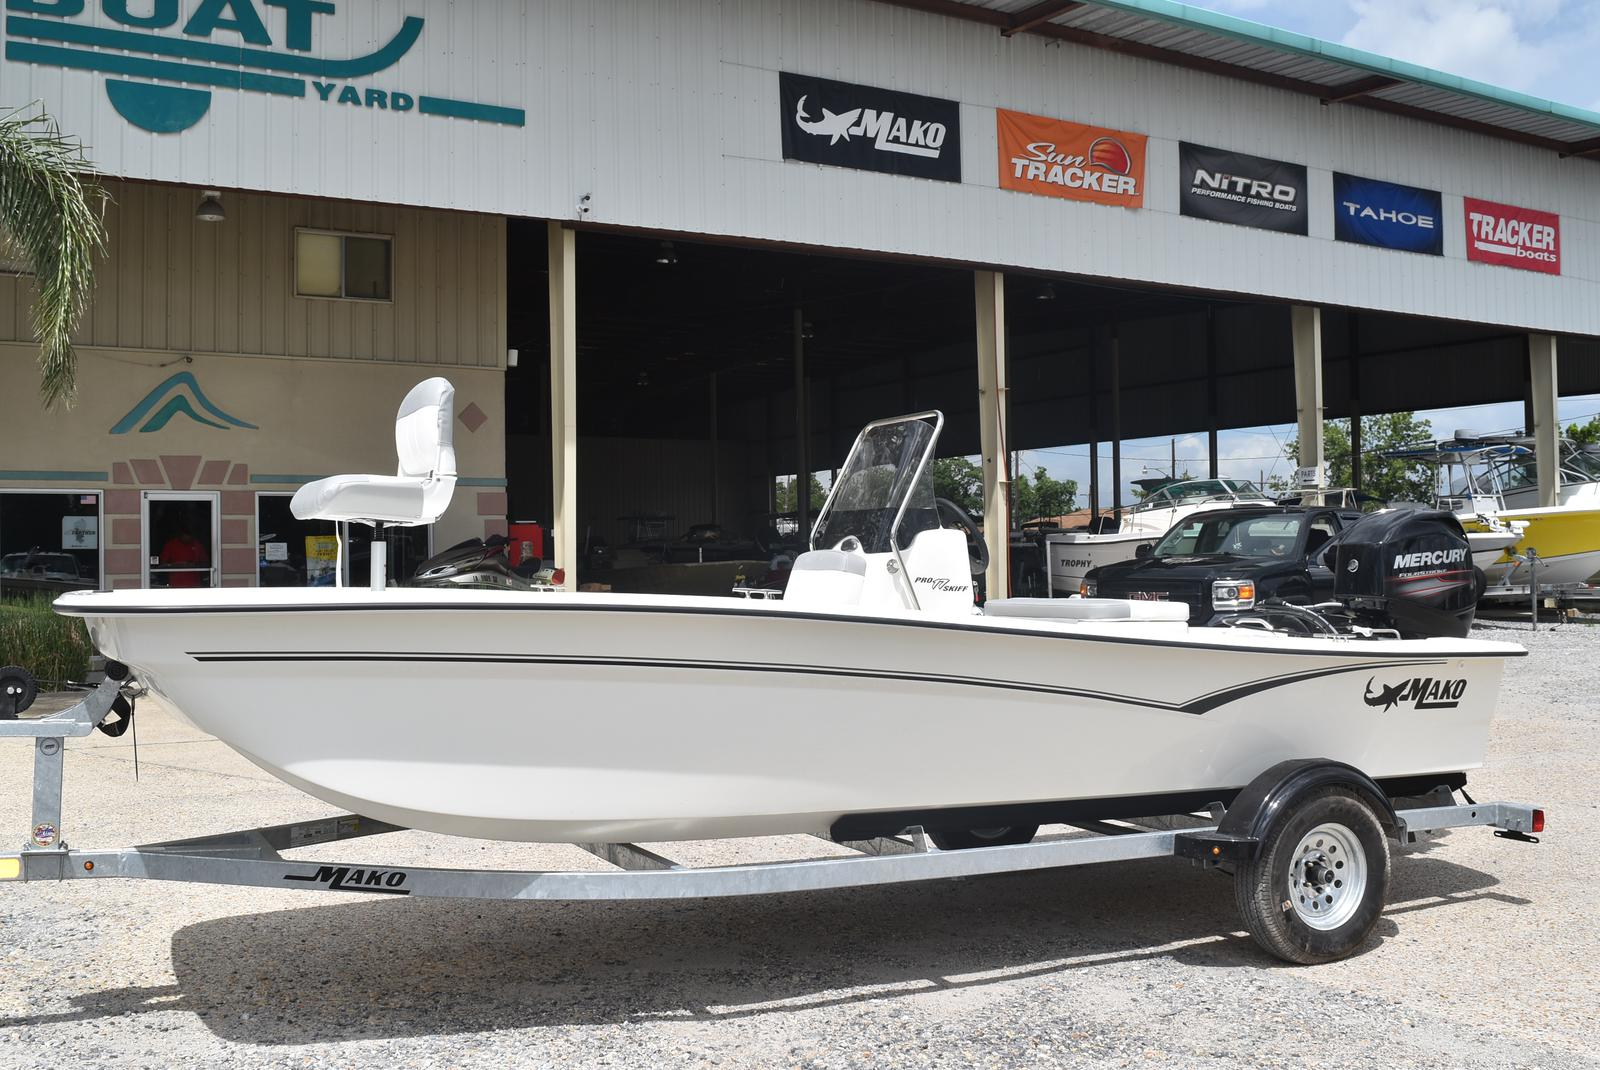 2020 Mako boat for sale, model of the boat is Pro Skiff 17, 75 ELPT & Image # 126 of 702